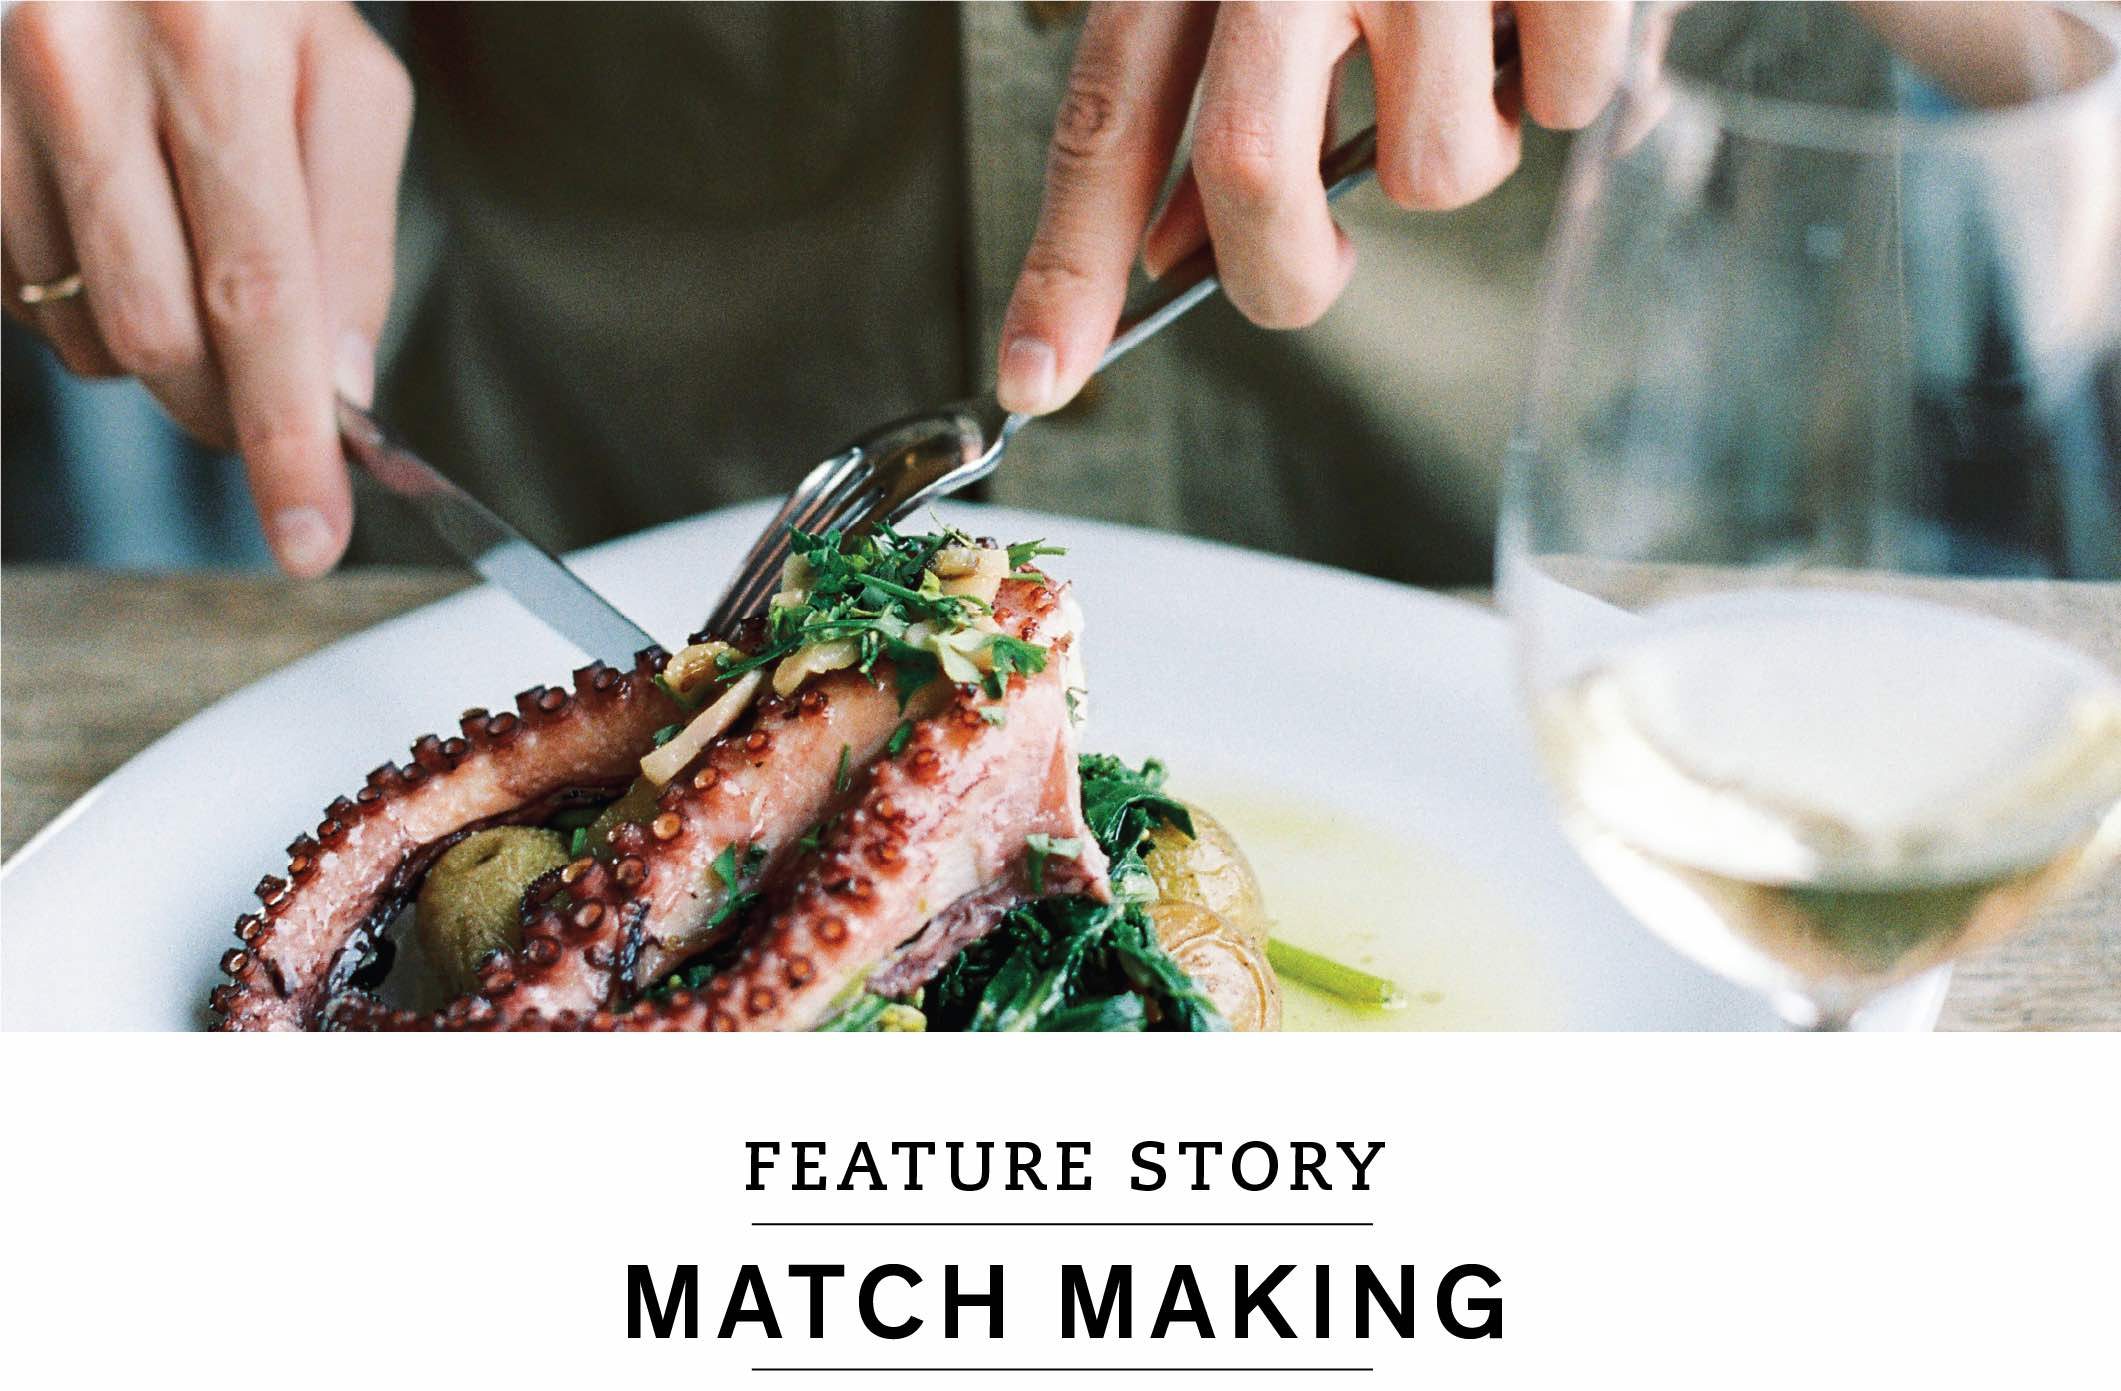 Feature Story: Match Making